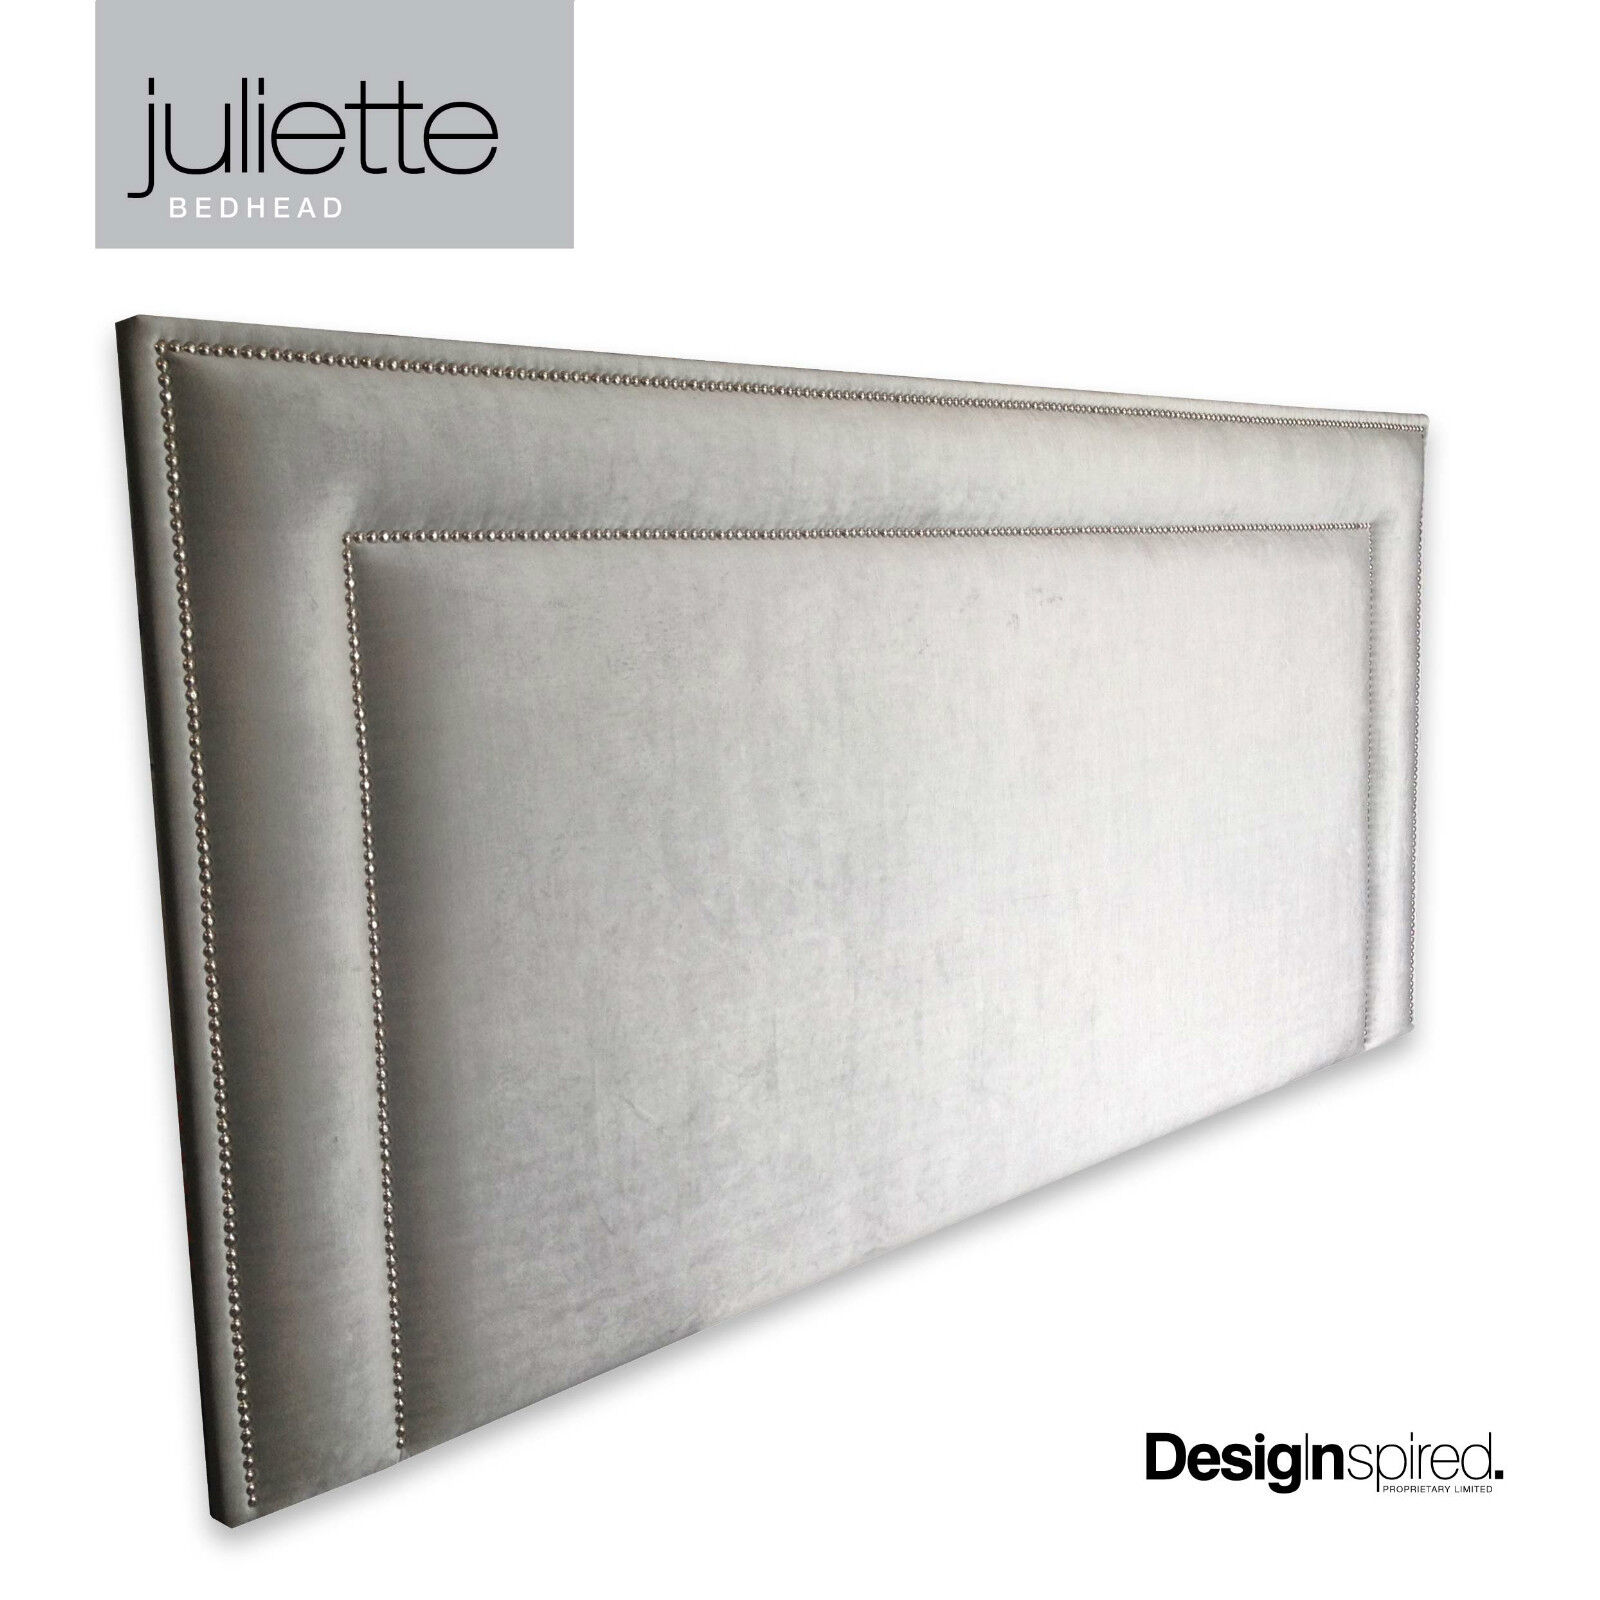 Headboard For Ensemble Juliette Chrome Stud Upholstered Bedhead For Queen Size